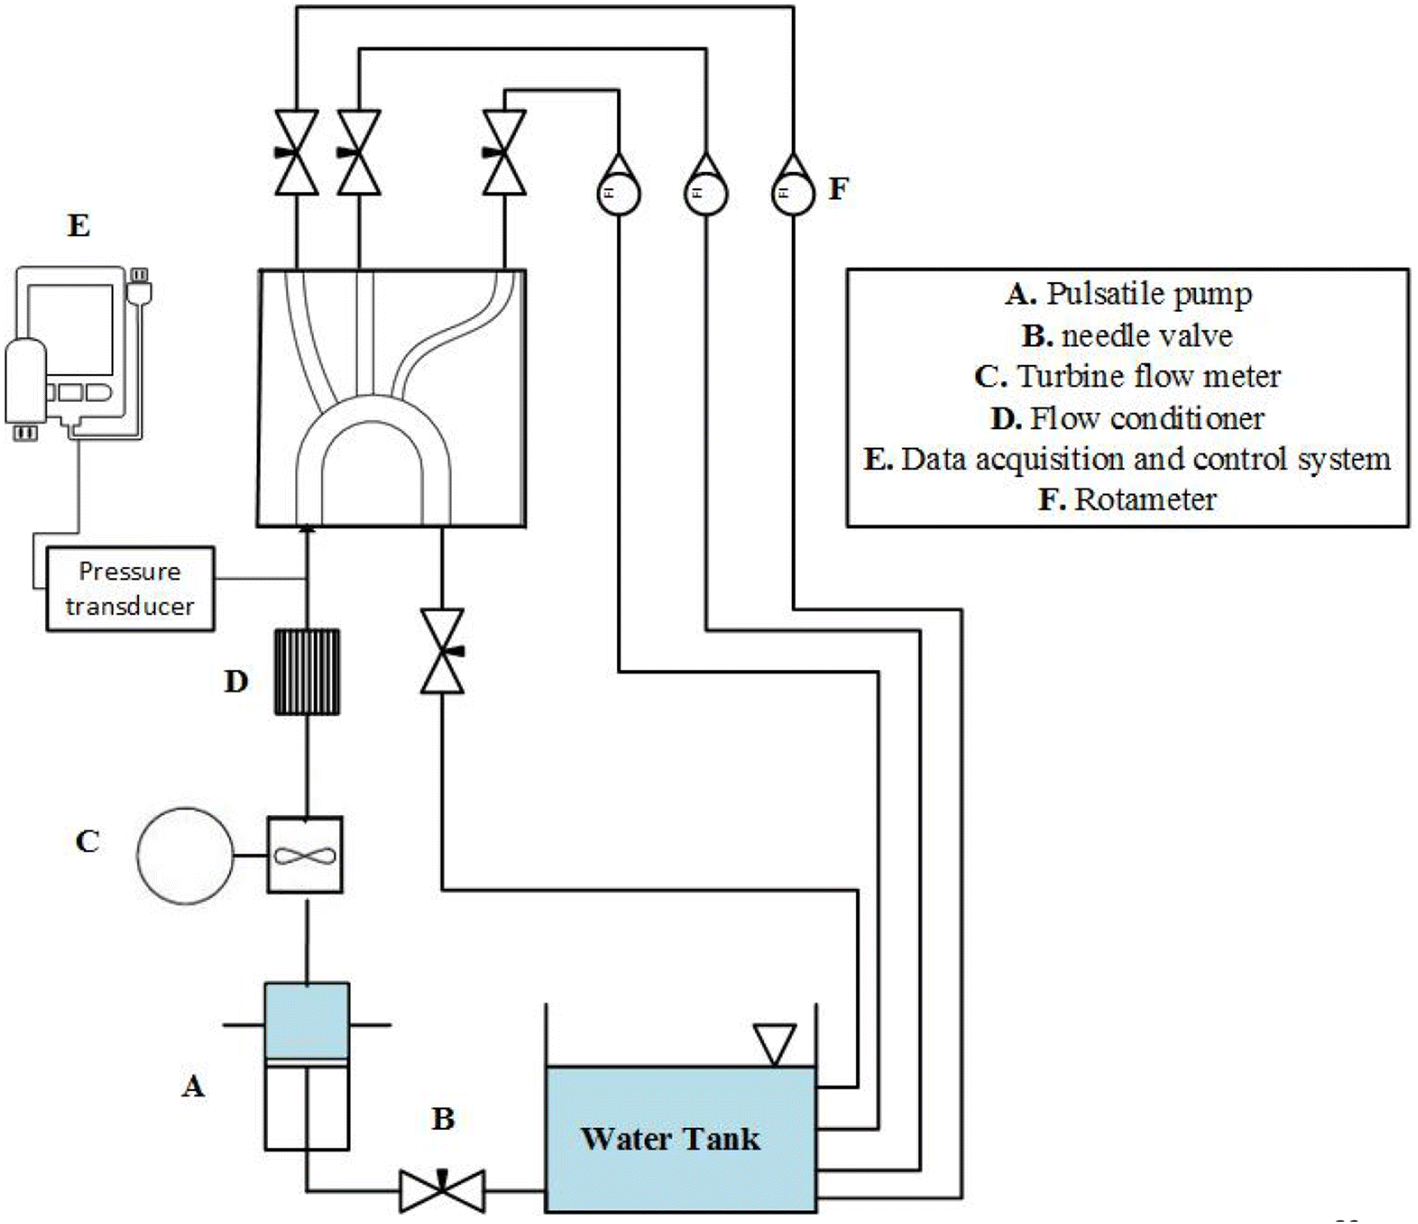 A Review Of Arterial Phantom Fabrication Methods For Flow Fuse Box Diagram 2006 Mercedes Benz S43 Open Image In New Window